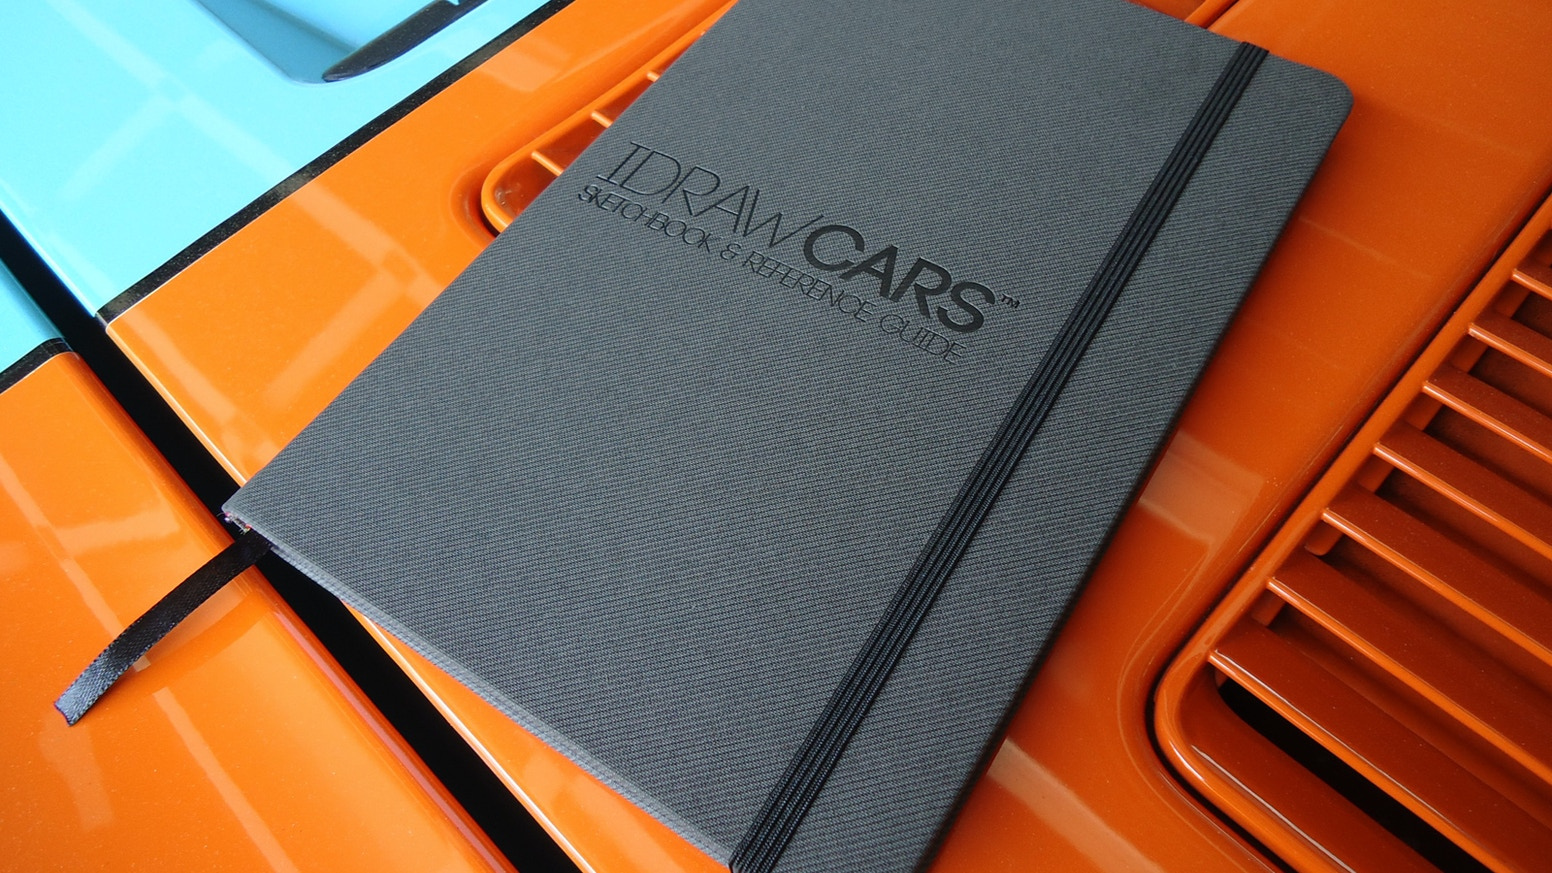 I DRAW CARS Sketchbook & Reference guide is an indispensible tool for students, designers, hobbyists, artists and car enthusiasts.